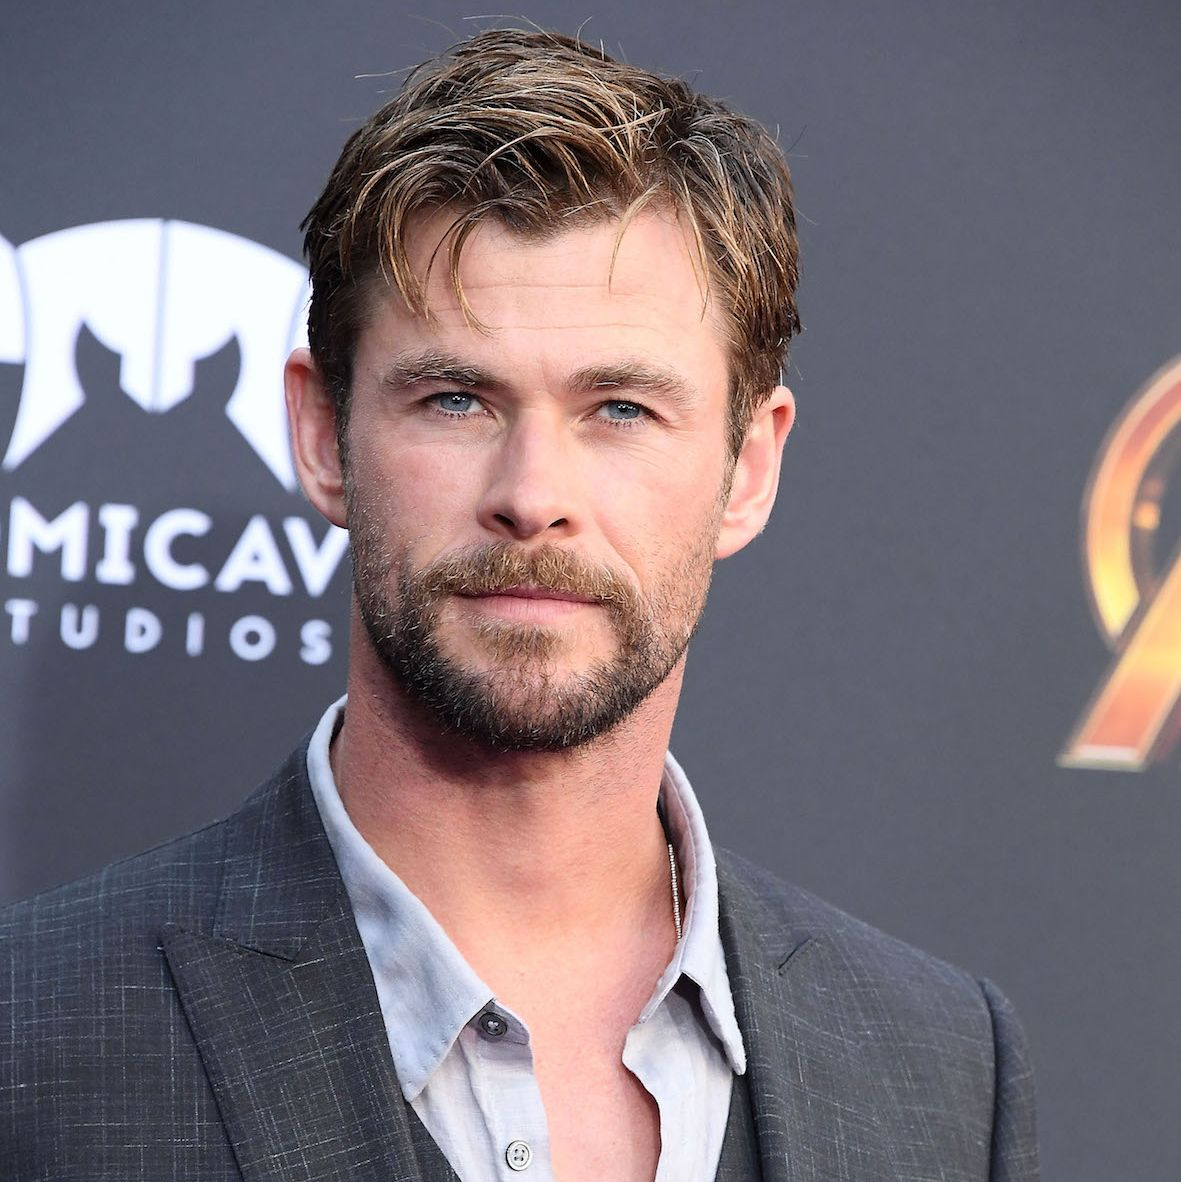 Avengers: Endgame star Chris Hemsworth is stepping into the ring to play WWE legend Hulk Hogan